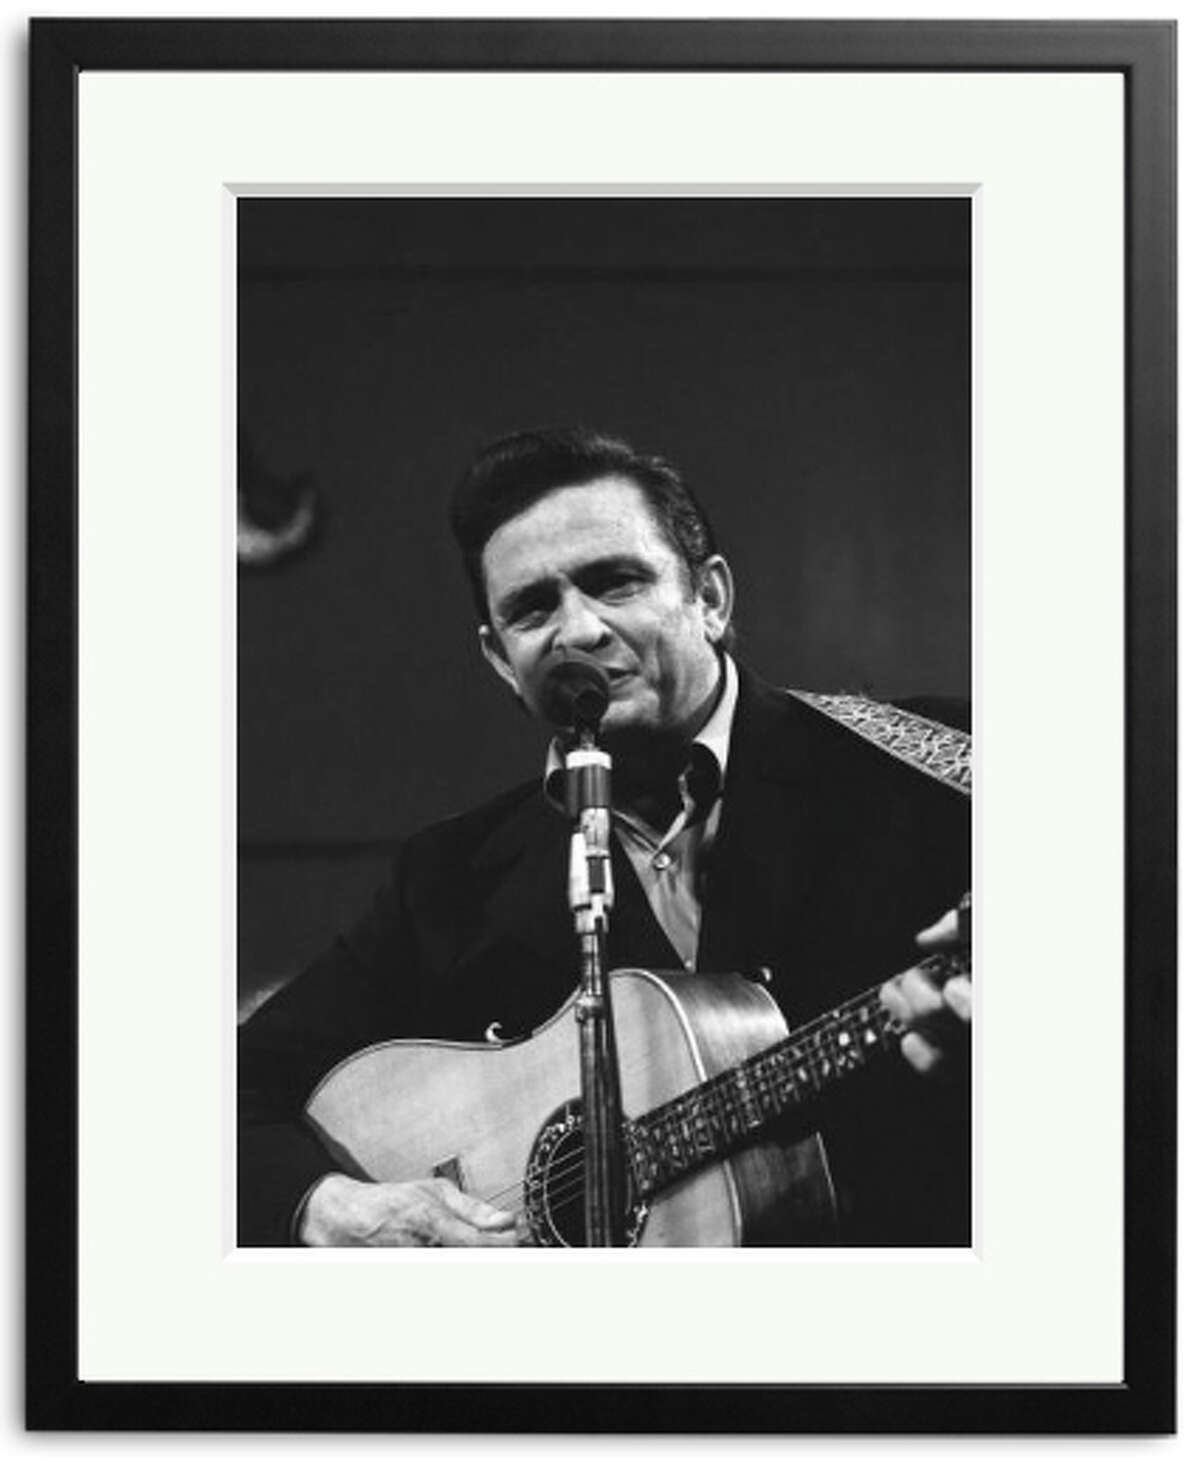 Sonic Editions is releasing for sale these never-before-seen photos of Johnny Cash at his legendary appearance with wife June Carter Cash at San Quentin. (Photo by ITV/REX)